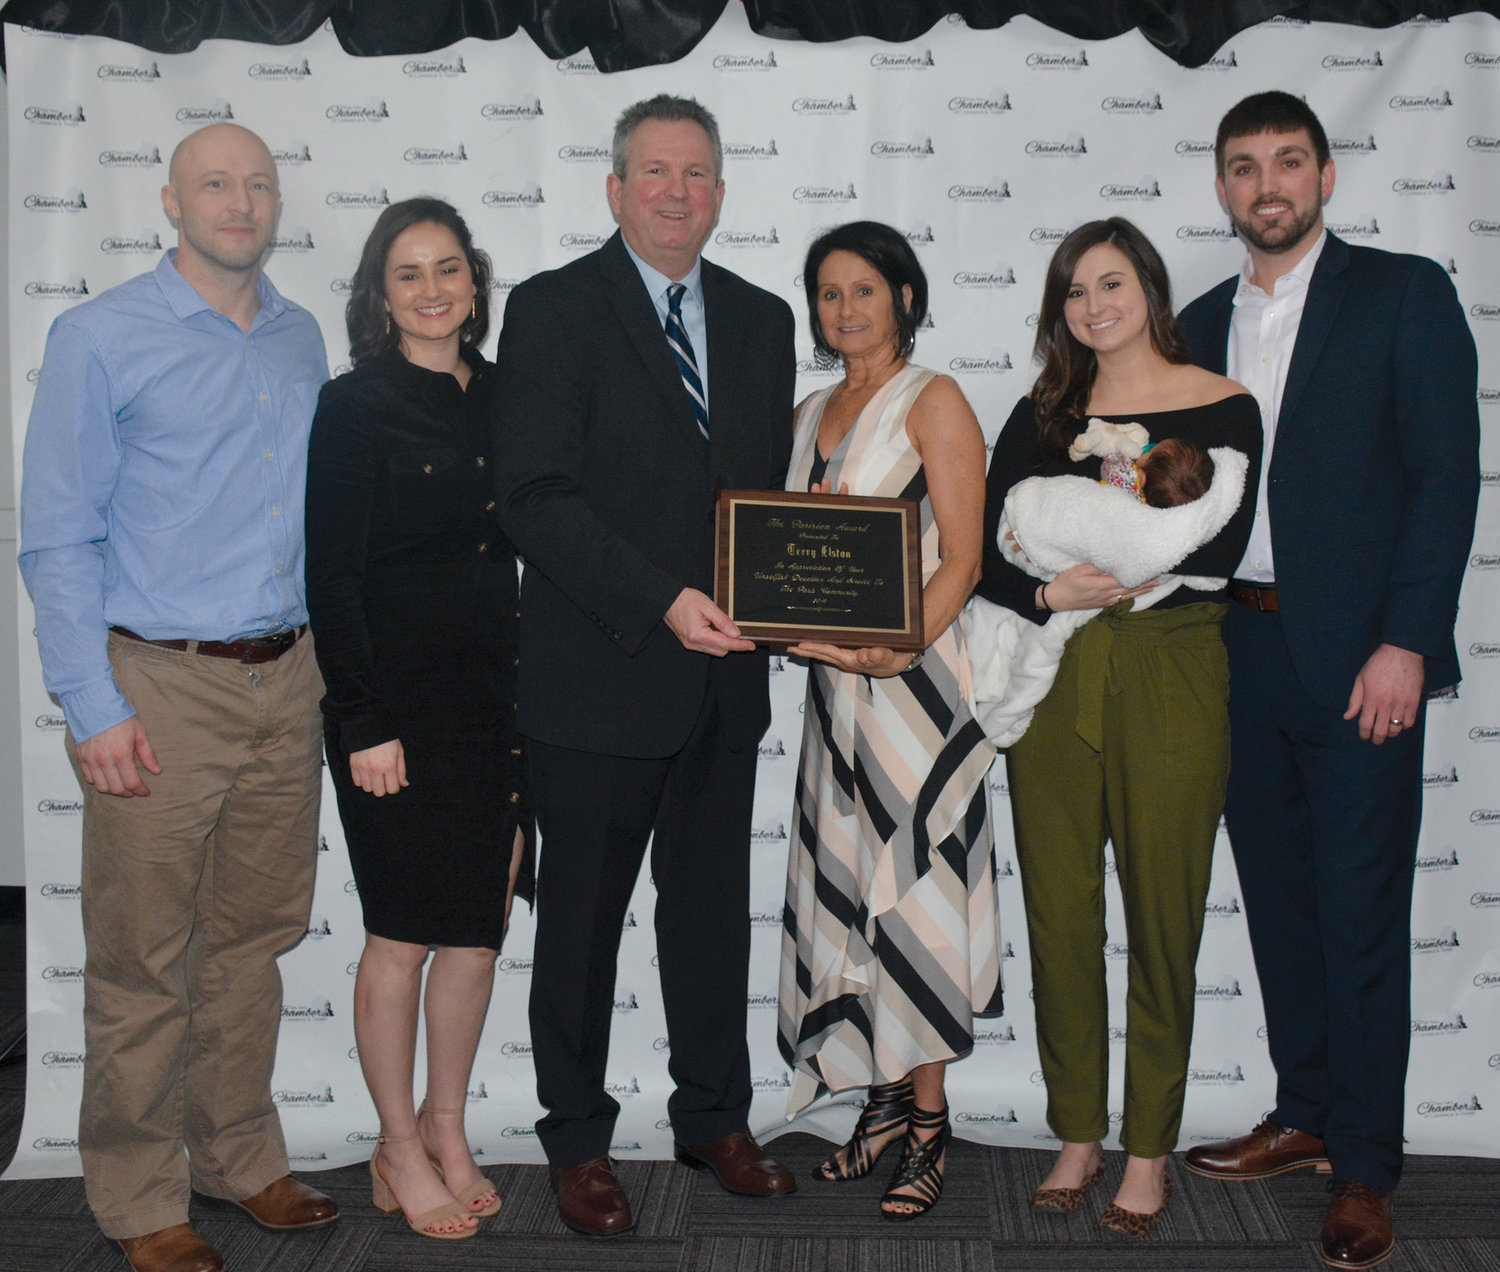 The family of 2019 Parisian Award recipient Terry Elston were present for the celebration Saturday, March 23, at the Tingley Reception Center. Pictured, from left are daughter and son-in-law Elliott and Kristin Booe, Elston and his wife, Melodie and daughter Kaitlin Temples holding her daughter, Greysen with husband Dalten Temples. Elston was honored for his work not only with PEDCO and the ECCEL Academy but his support of all things youth and Paris.